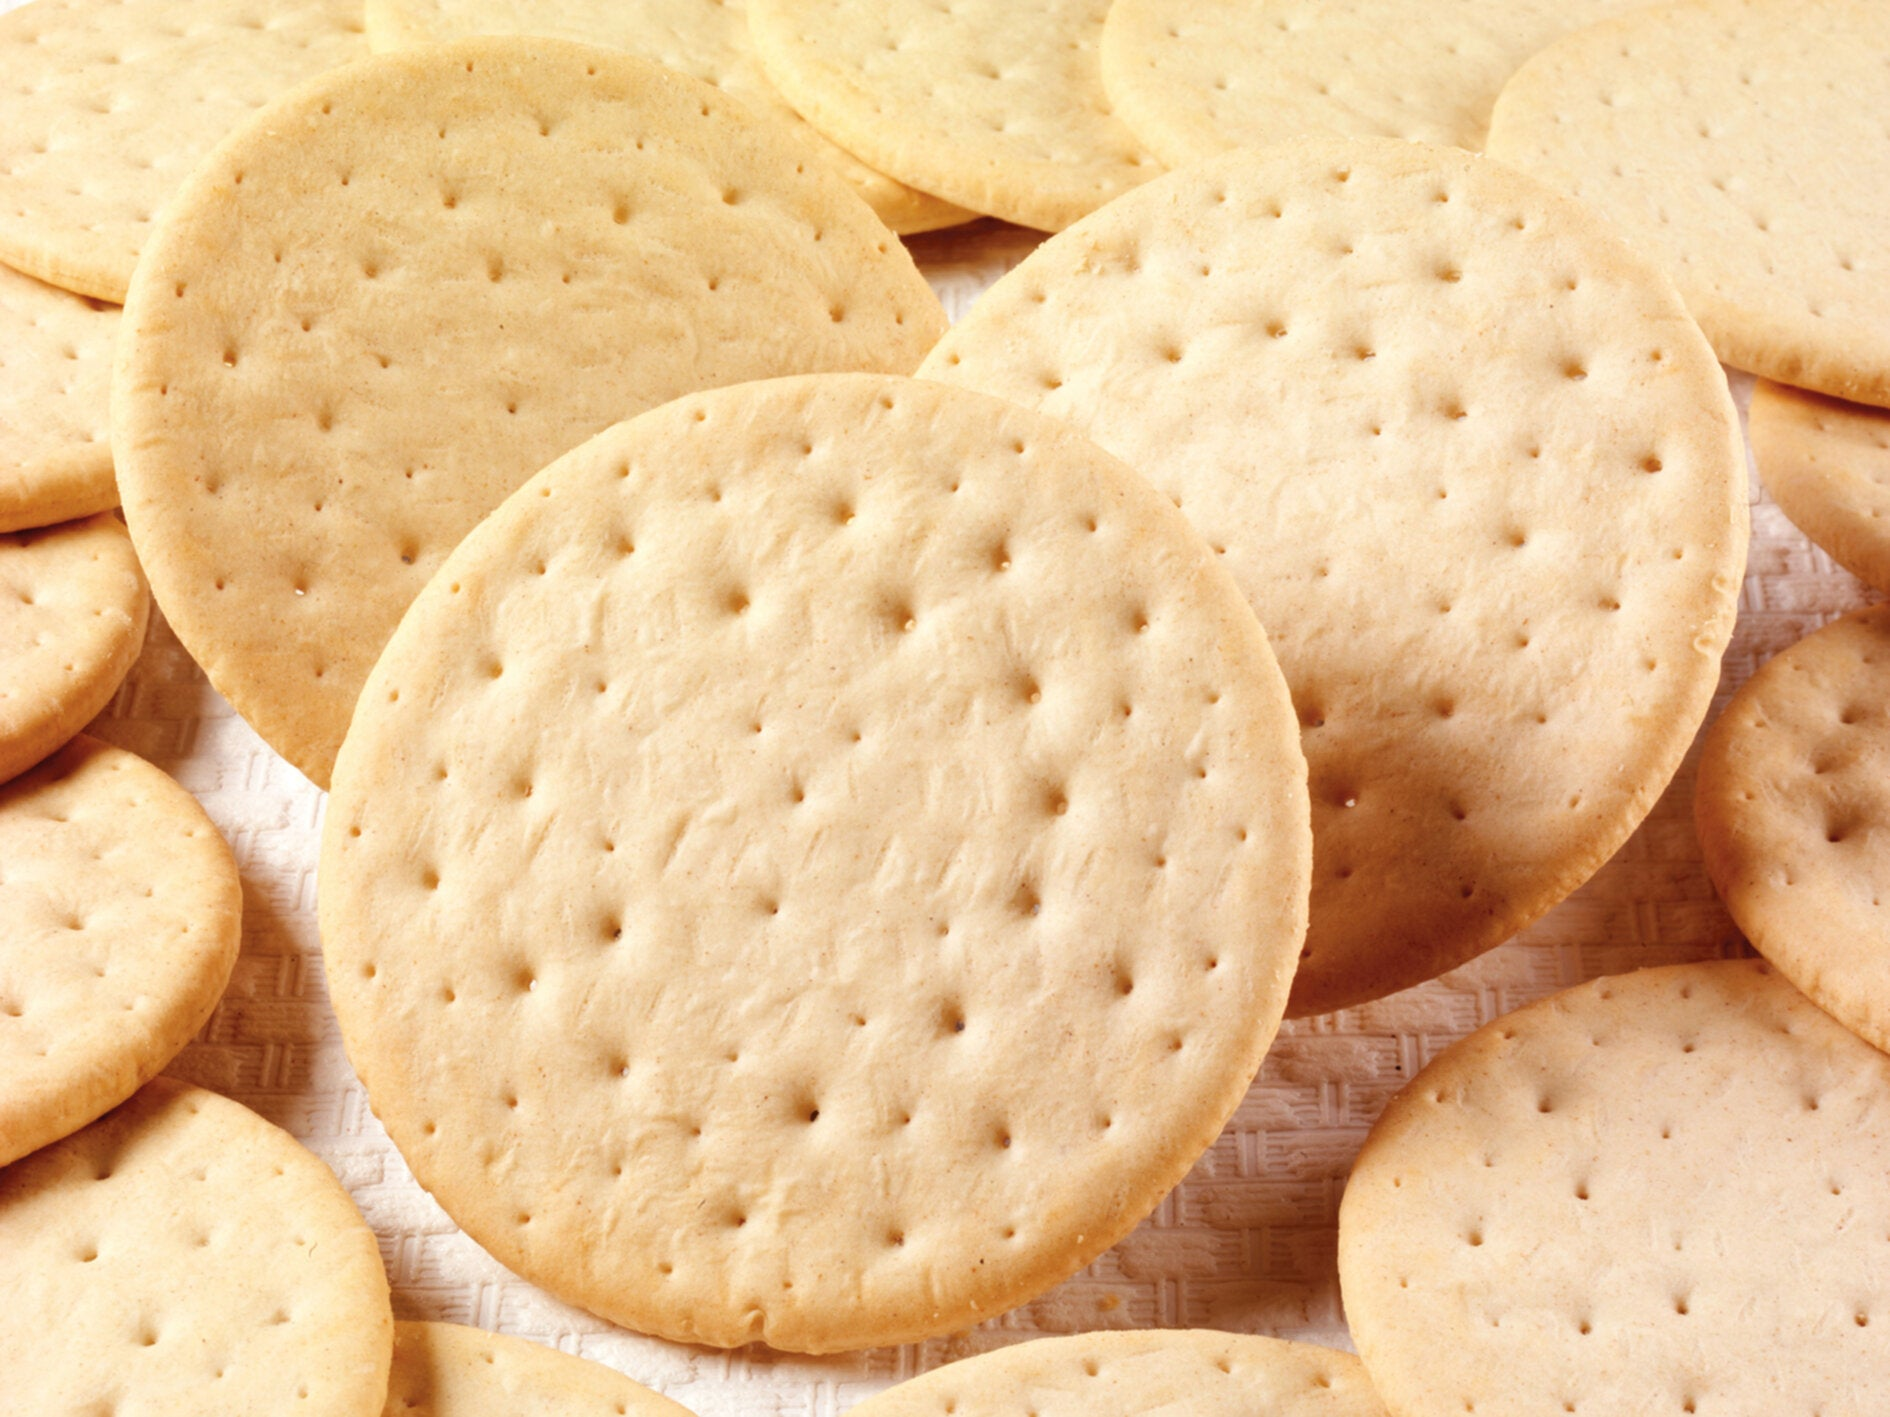 I despaired when I heard that the venerable Bath Oliver biscuit had ceased production